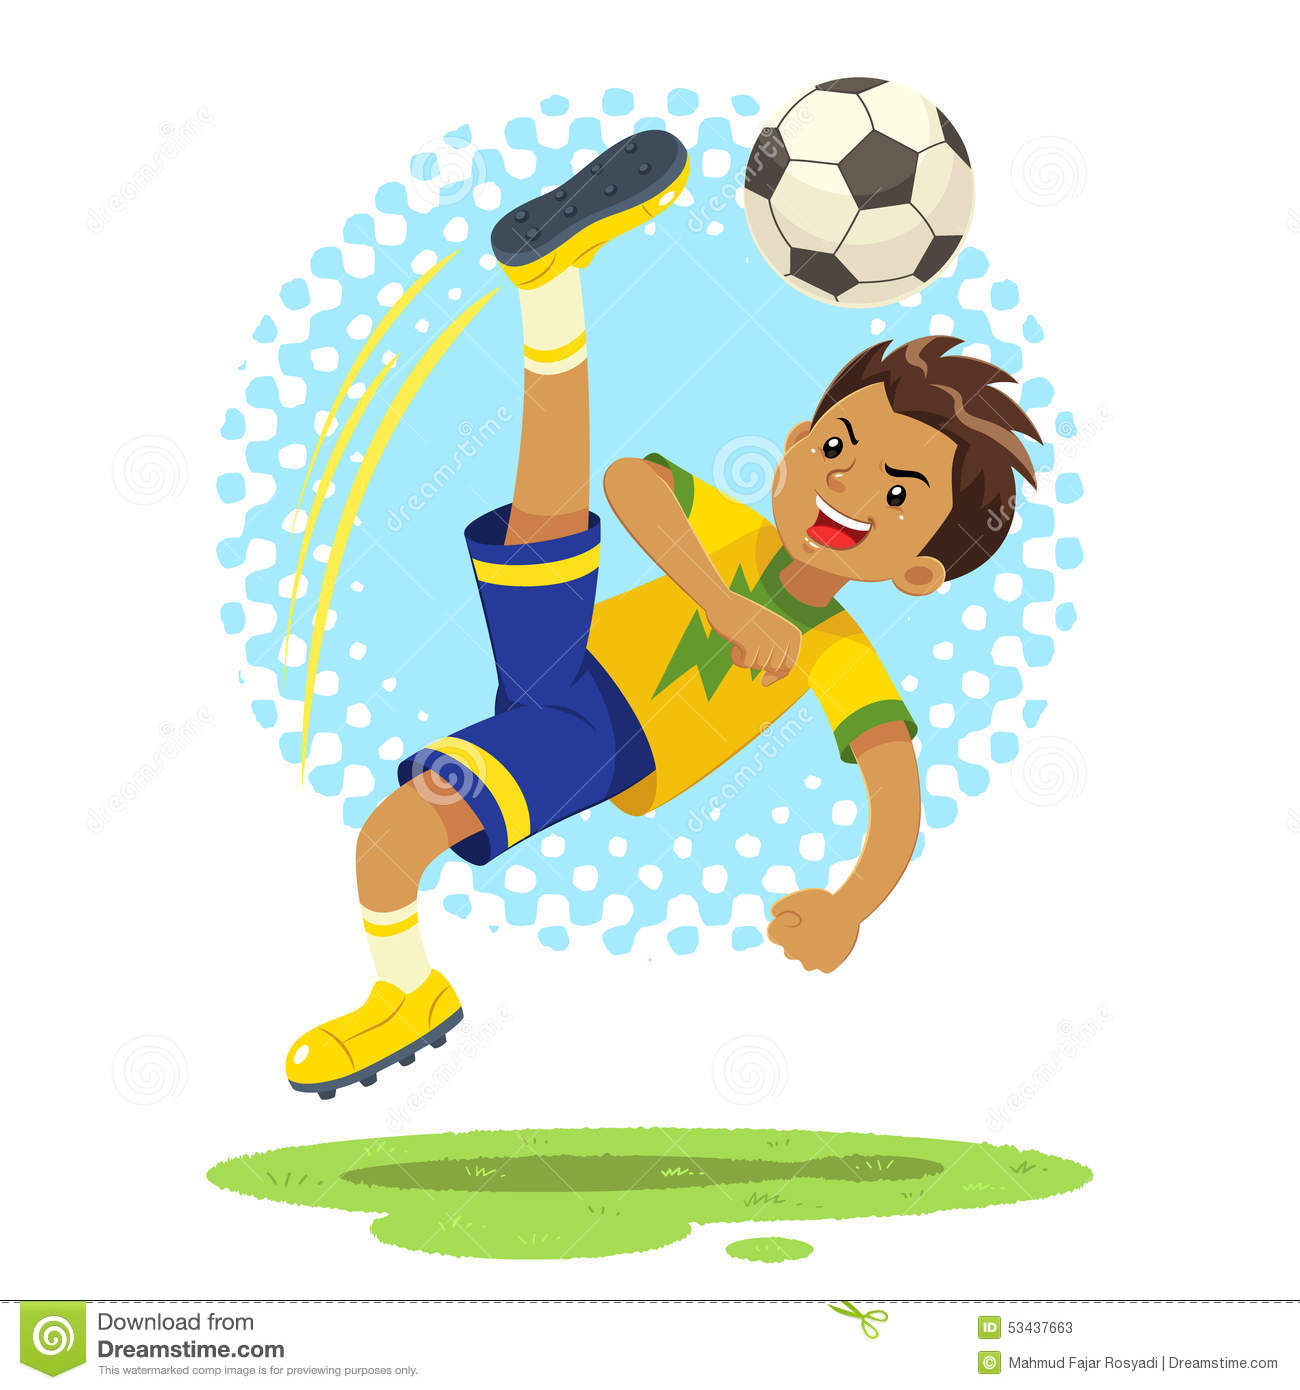 Soccer Boy Hit The Ball Using Bicycle Kick Technique Stock ...